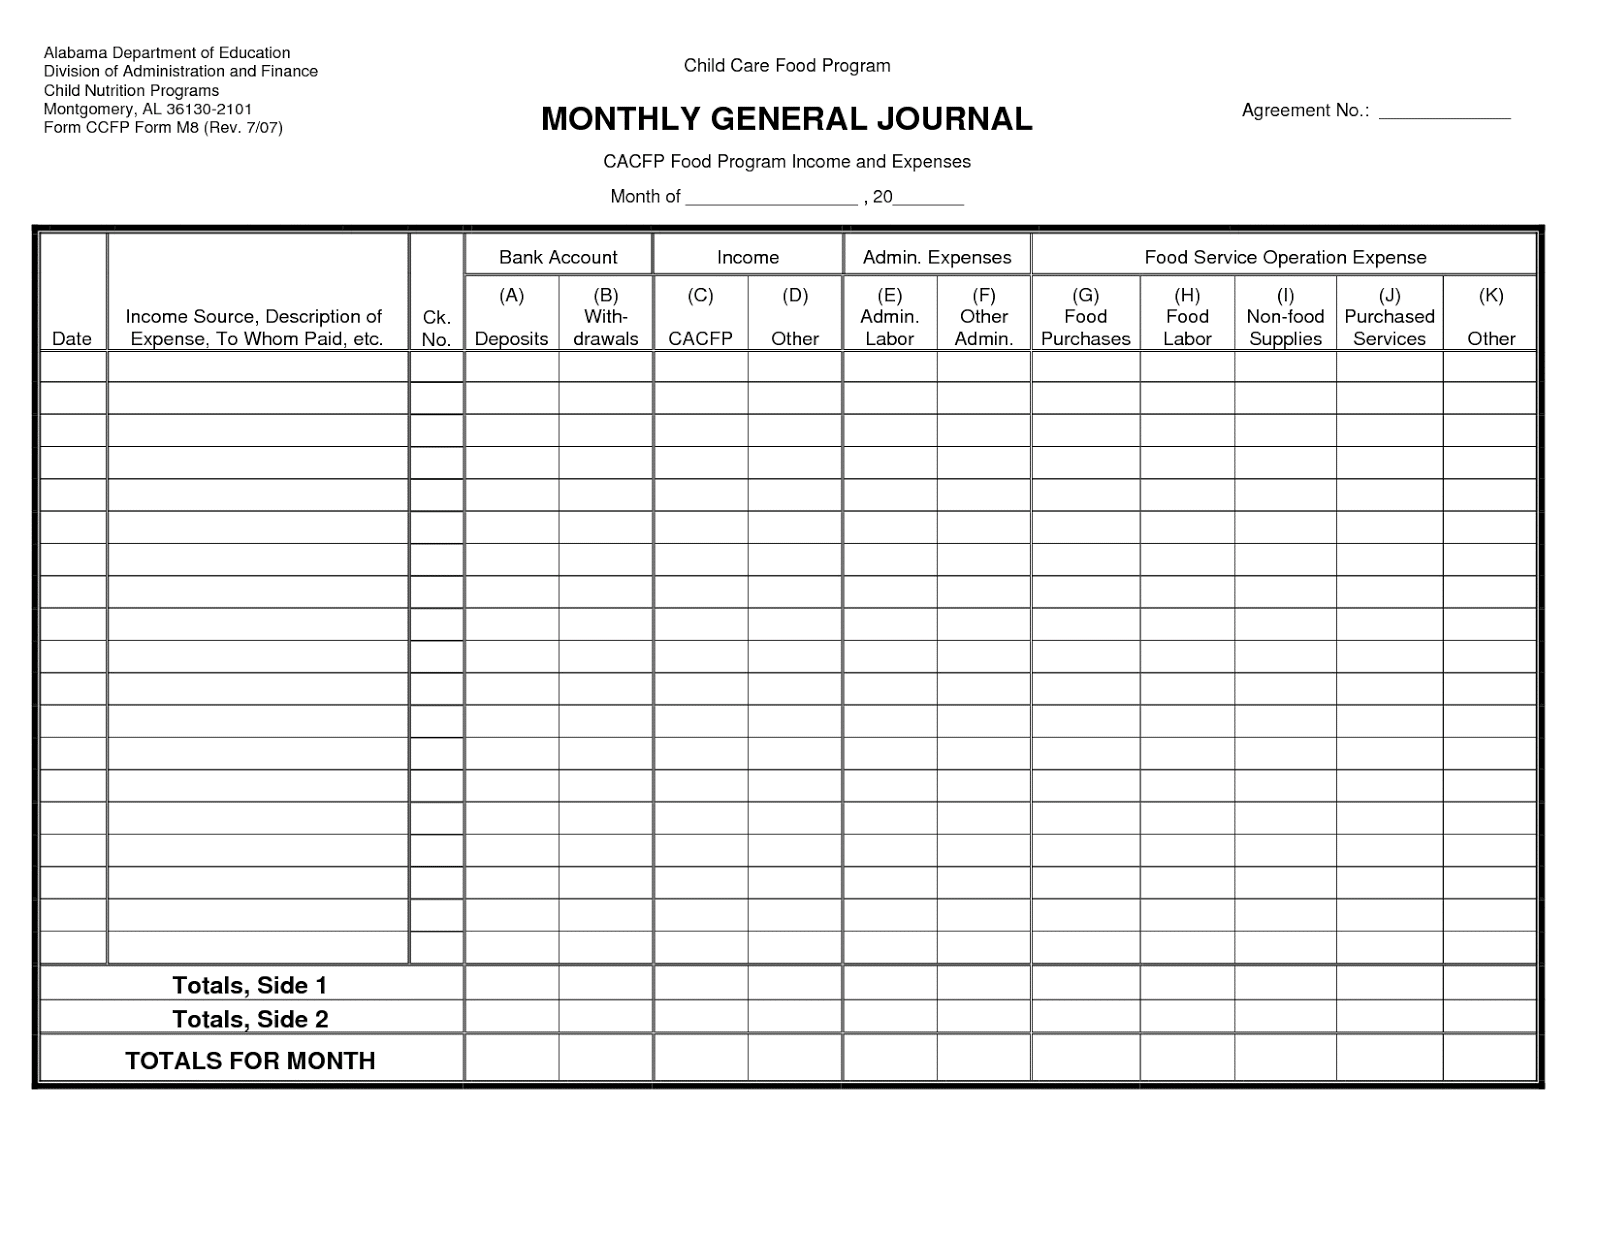 doc 746489 ledger form ledger form 90 similar docs printable ledger template 15 general ledger templates excel pdf ledger form